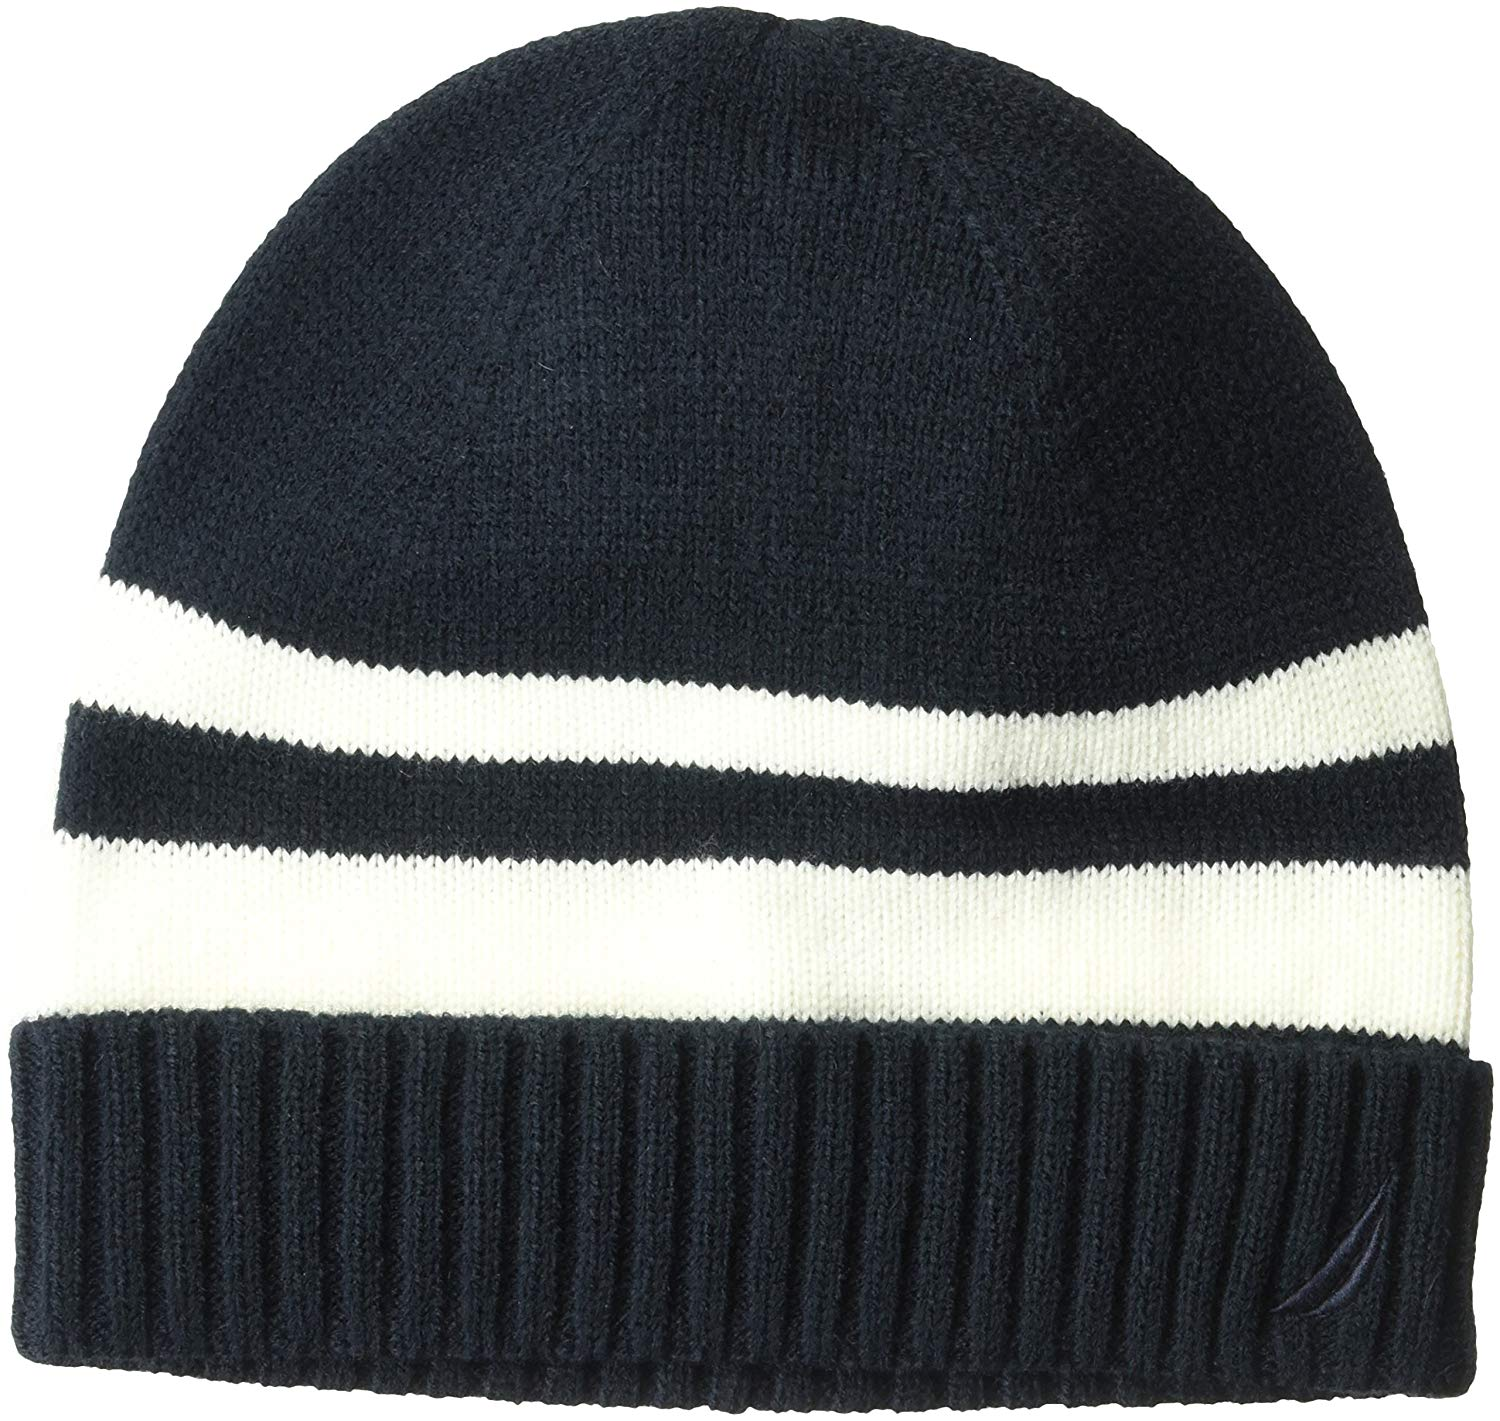 056c2bafebb80 Get Quotations · Nautica Men s Striped Hat With Ribbed Cuff